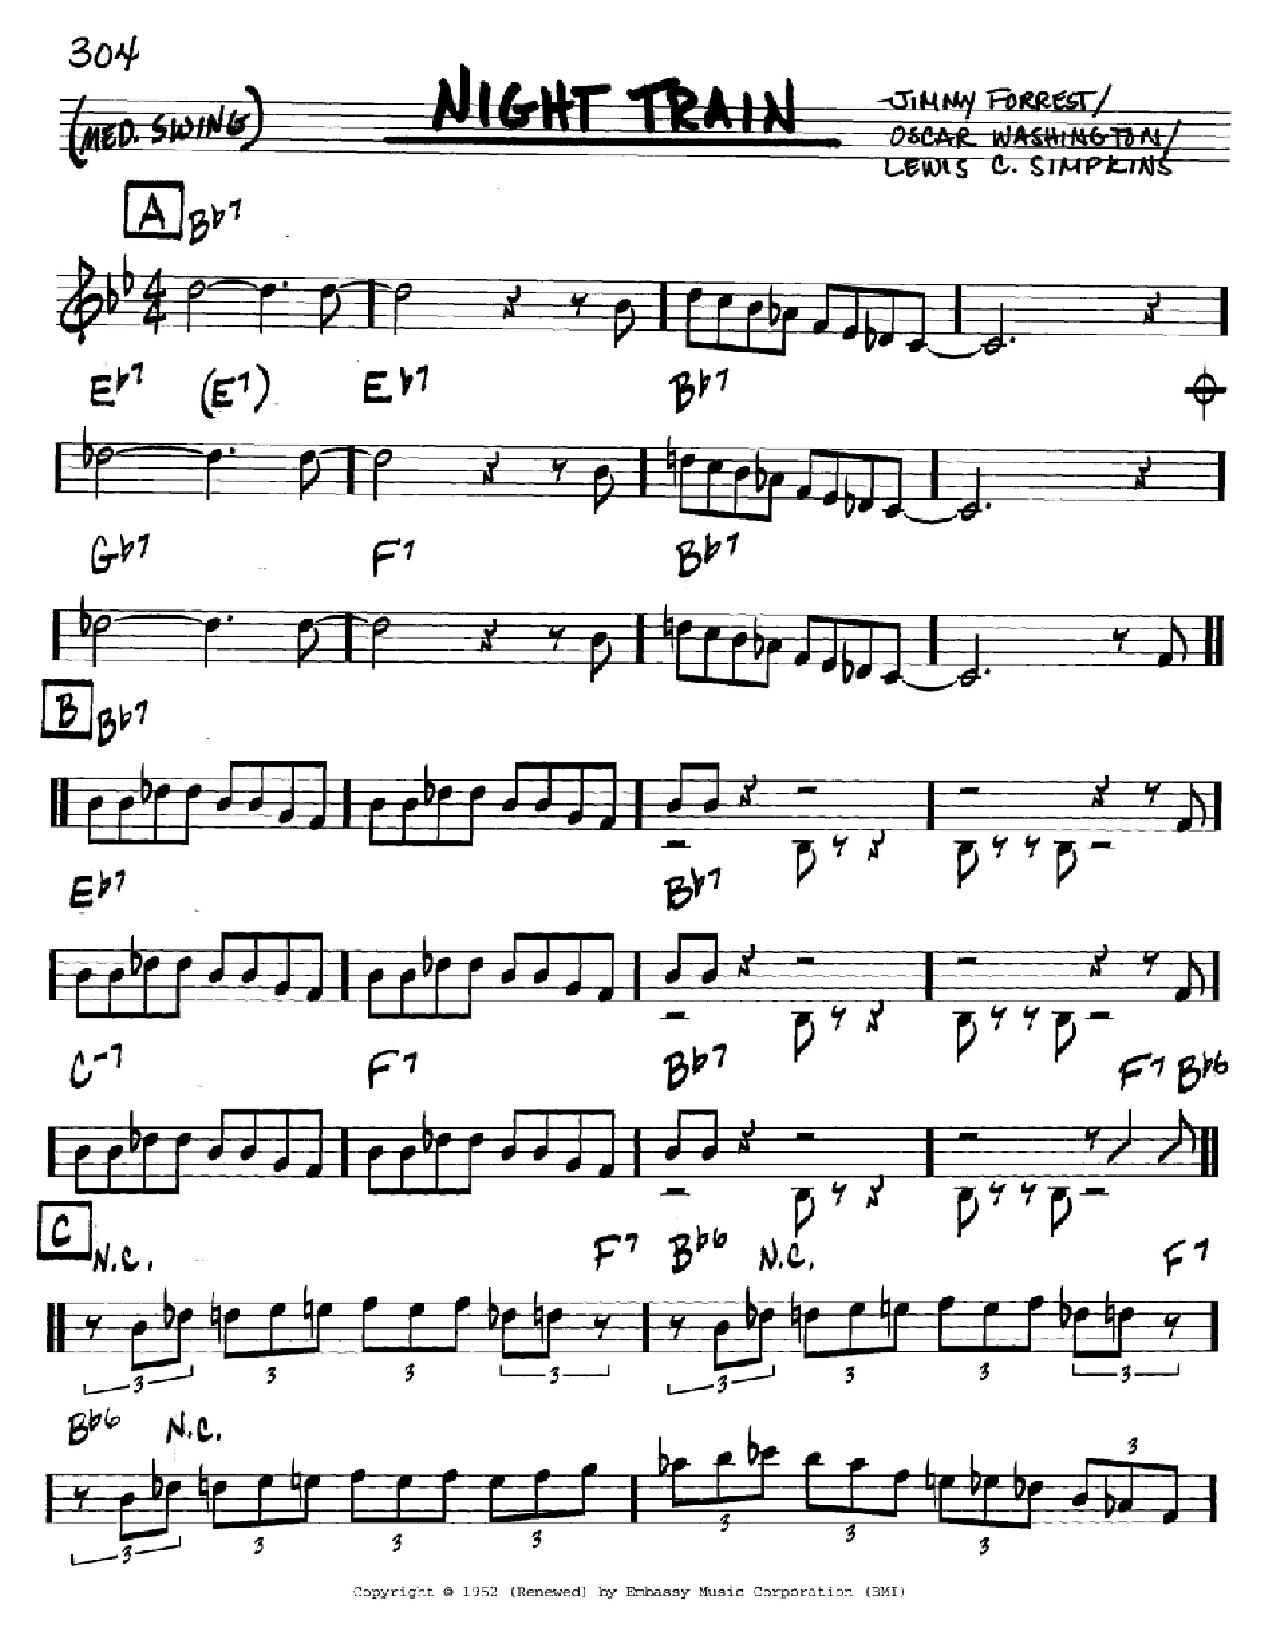 Night Train Sheet Music